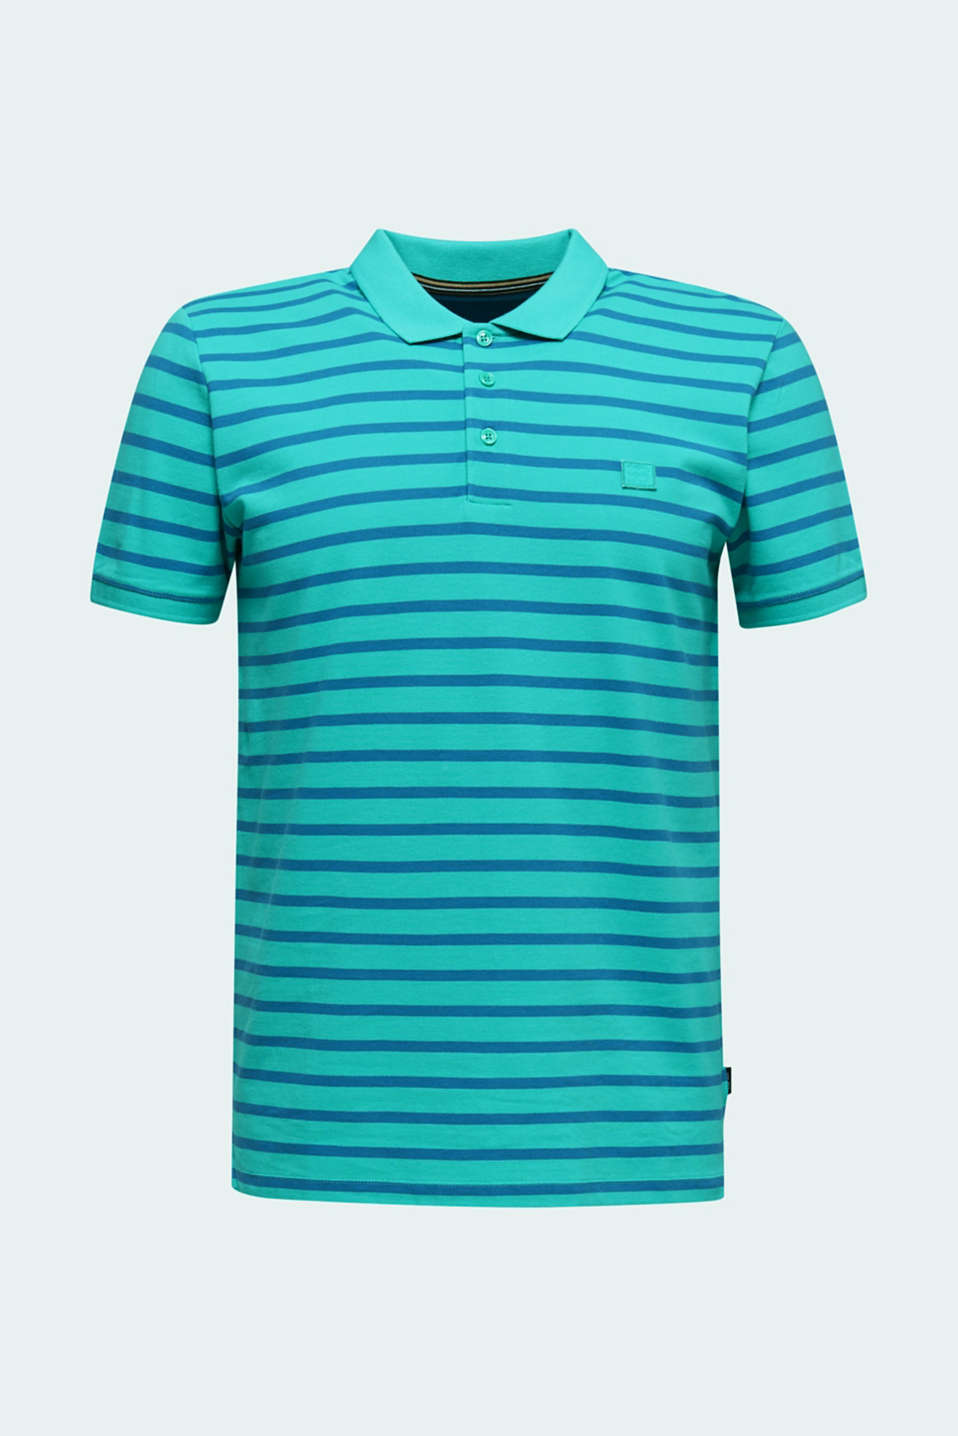 Piqué polo shirt in 100% cotton, LIGHT TURQUOISE 3, detail image number 6